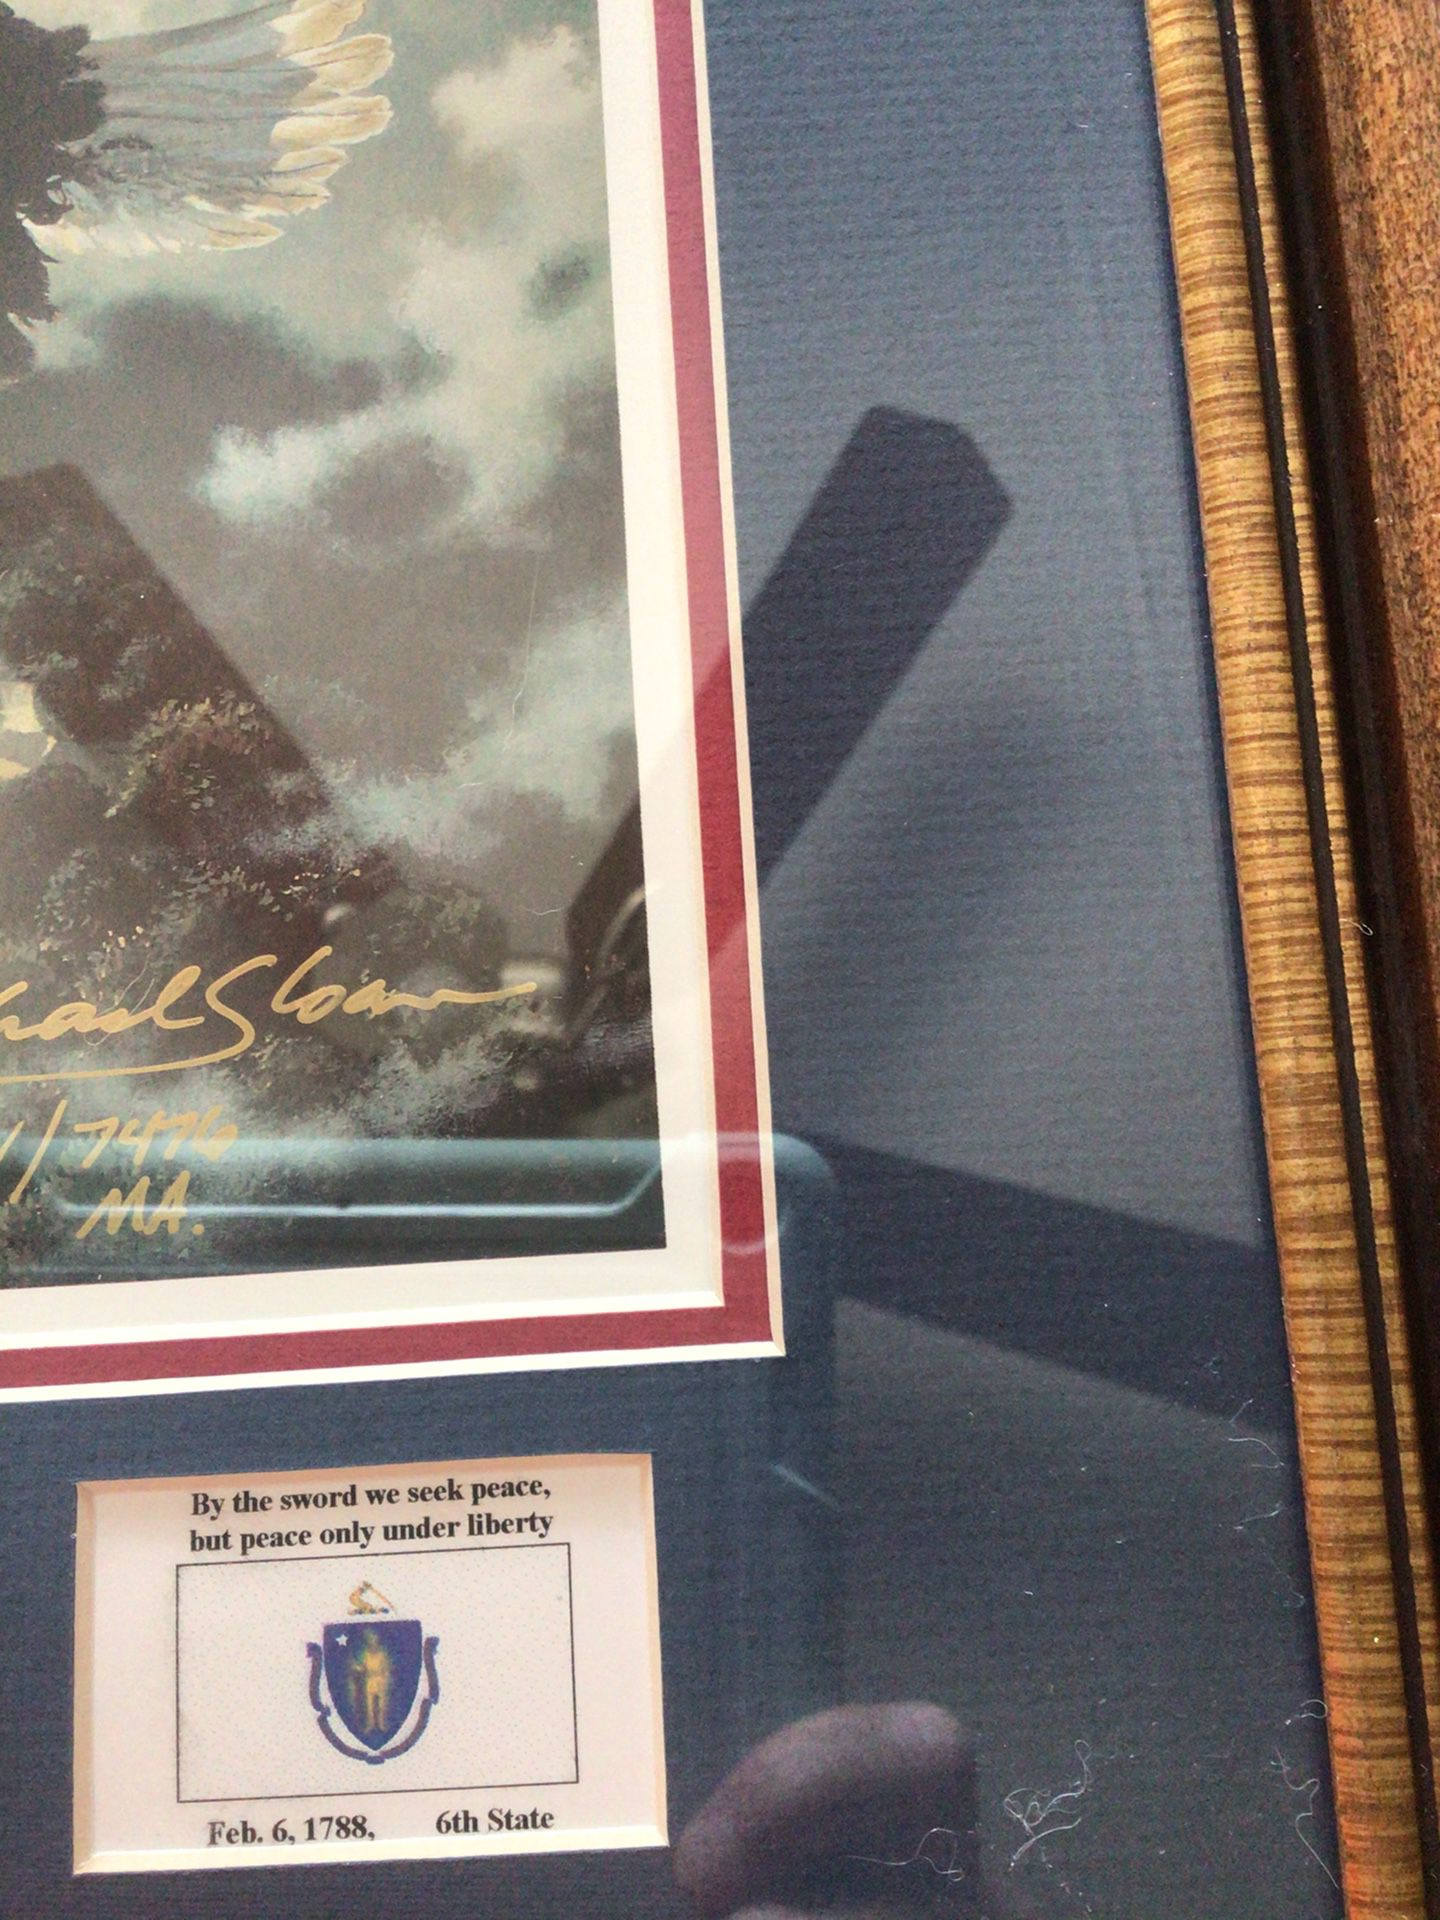 Bay State Michael Sloan Print Signed